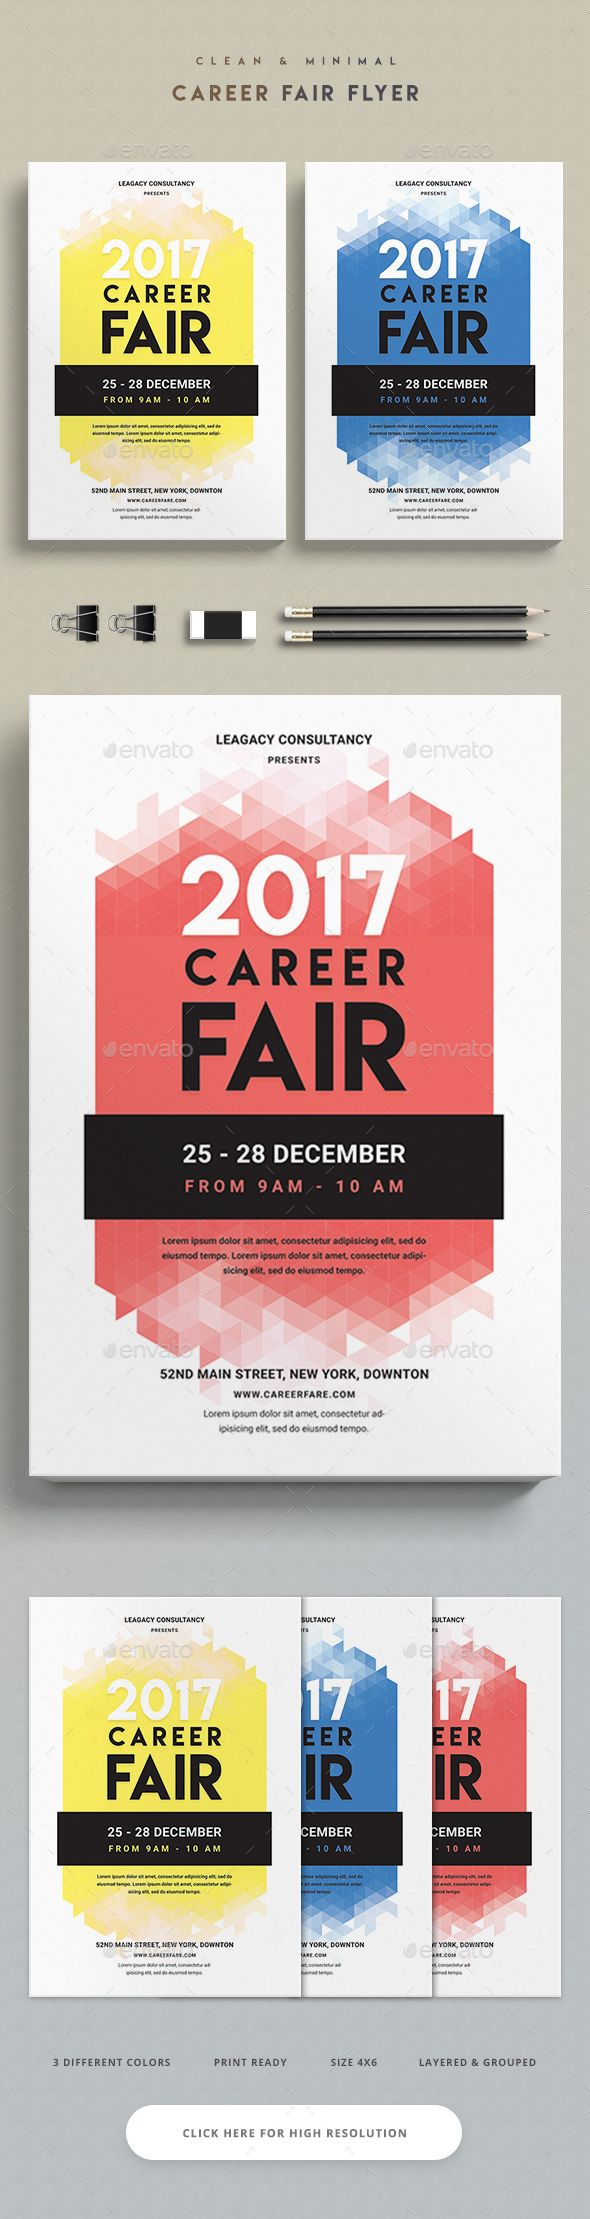 Career Fair Flyer  — PSD Template #seminar #conference #advertisement #symposium • Download ➝ https://graphicriver.net/item/career-fair-flyer/18242150?ref=pxcr